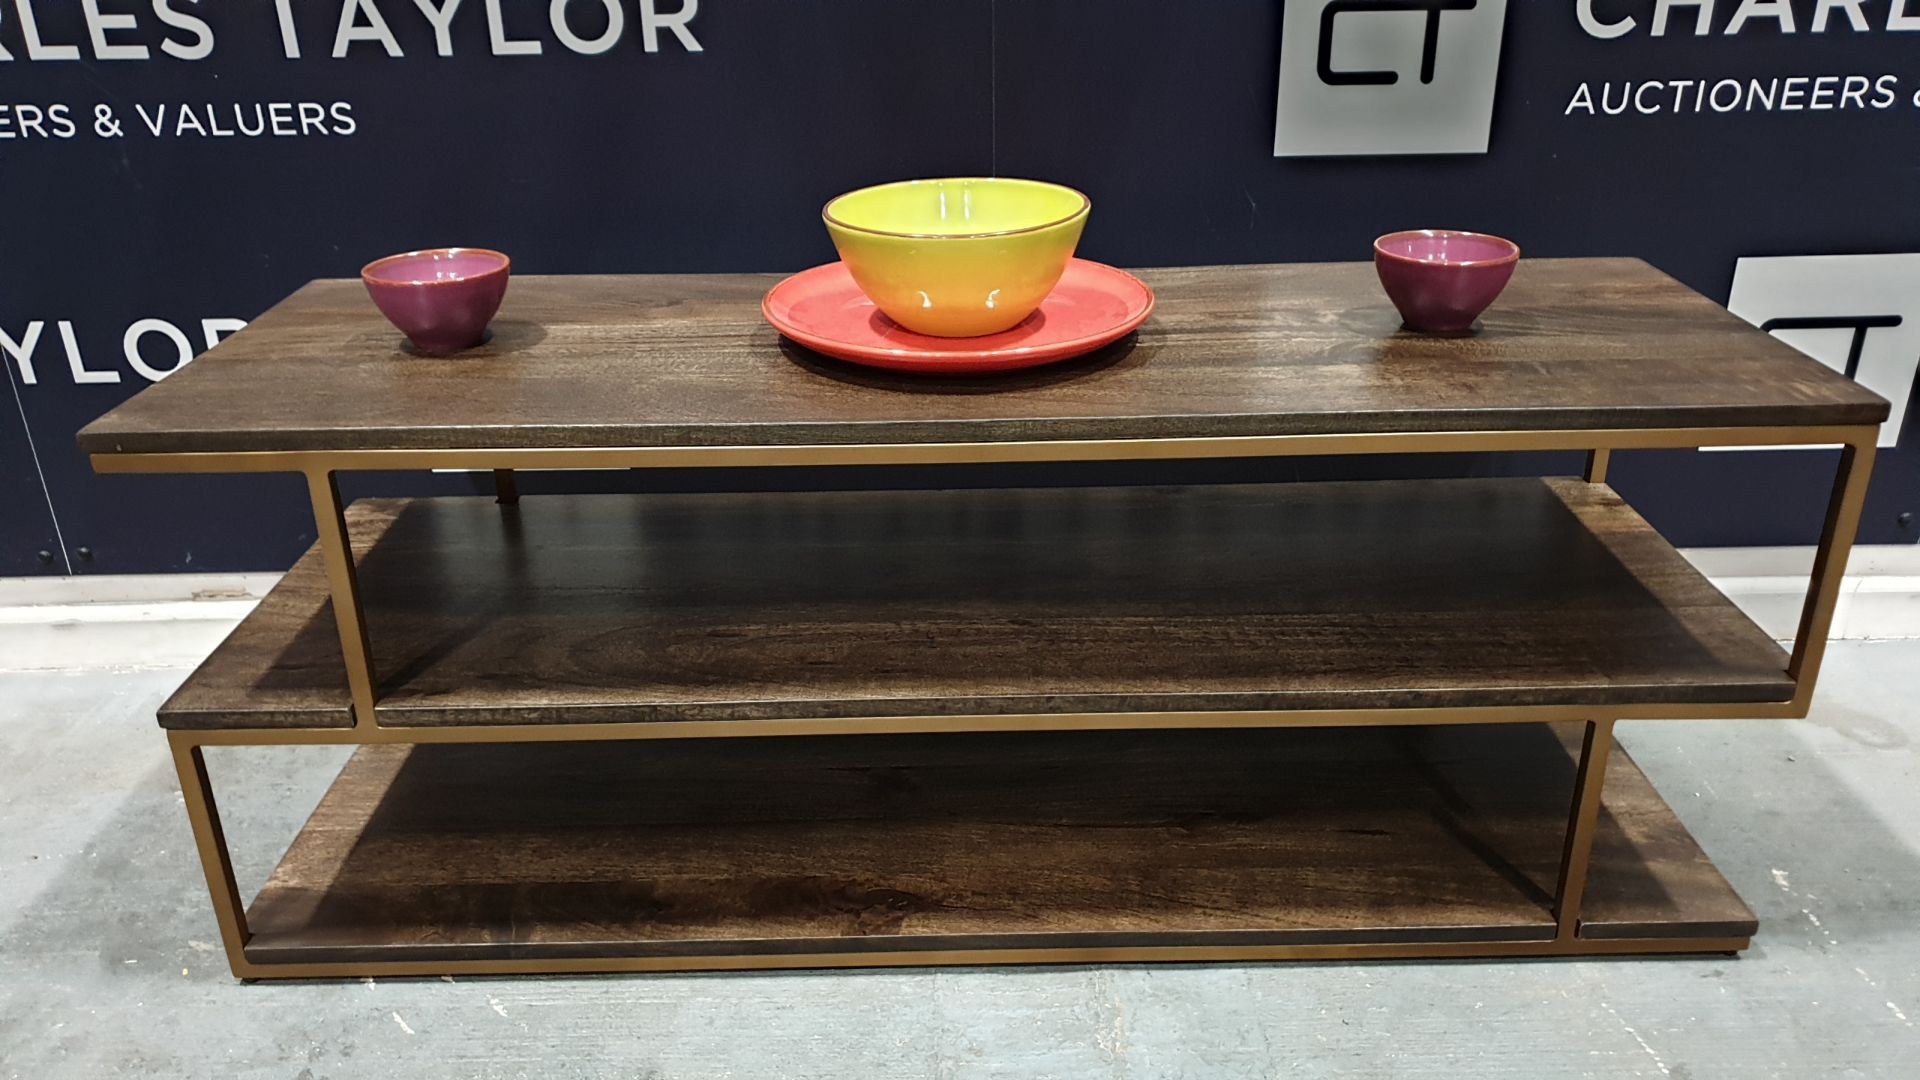 Lot 1011 - BRAND NEW BOXED CONTENT BY TERENCE CONRAN BALANCE COFFEE TABLE, WOOD/METAL(BRASS) - 41 X 121 X